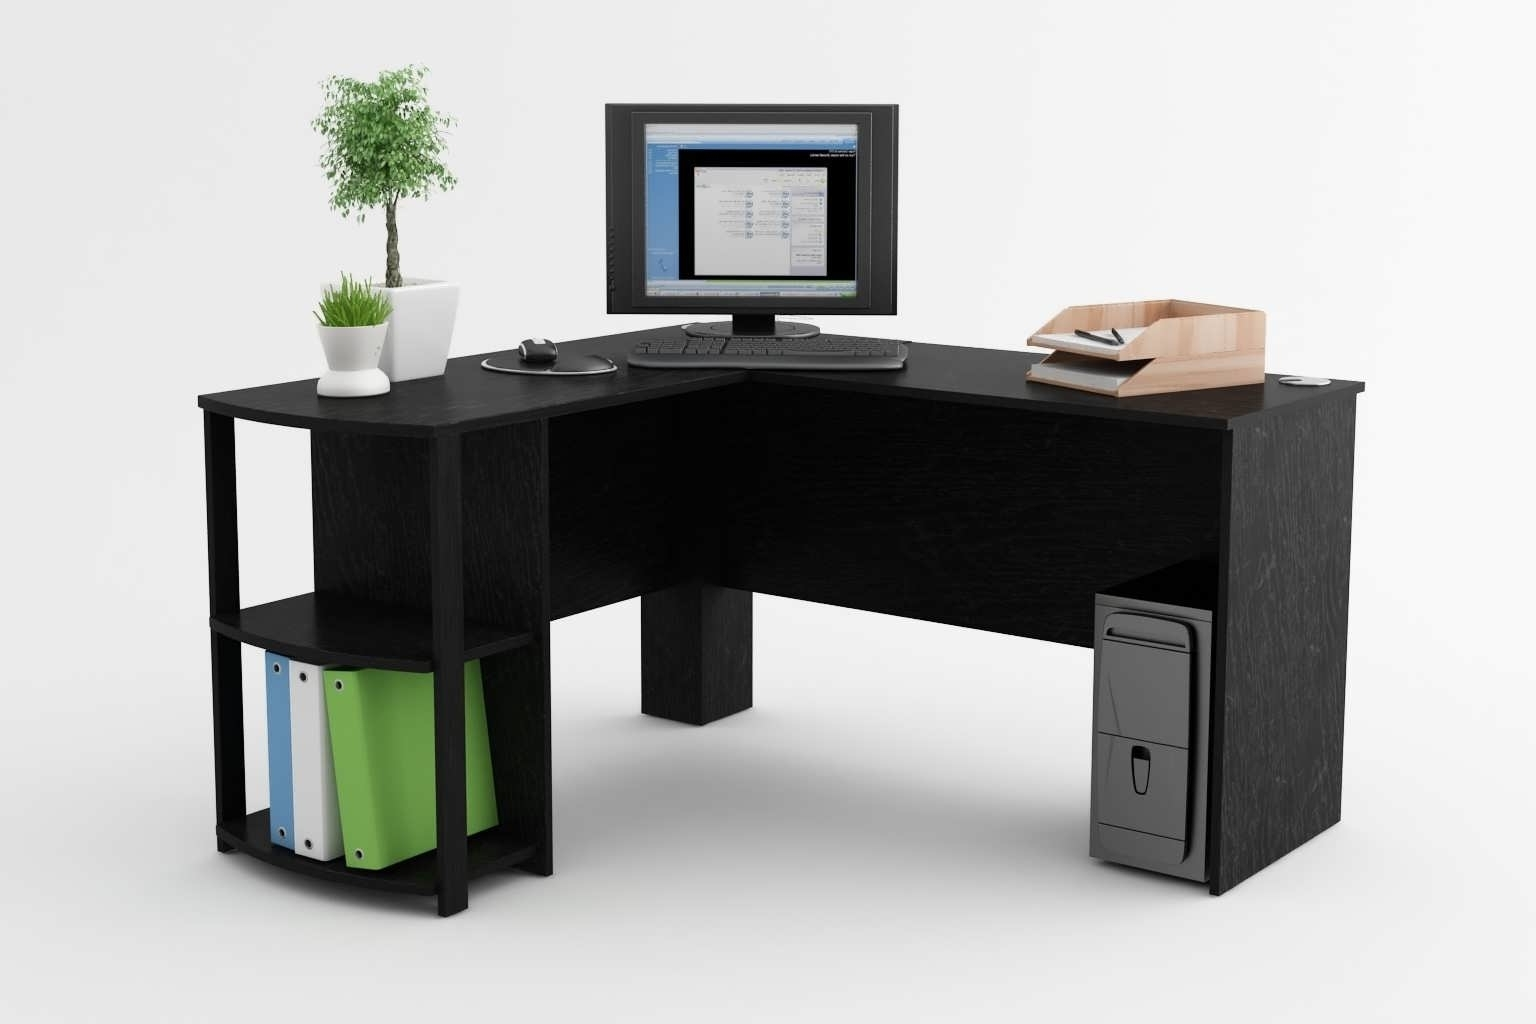 Office Desk : Build Your Own Desk Odd Lots Furniture Simple In Newest Computer Desks At Big Lots (View 11 of 20)